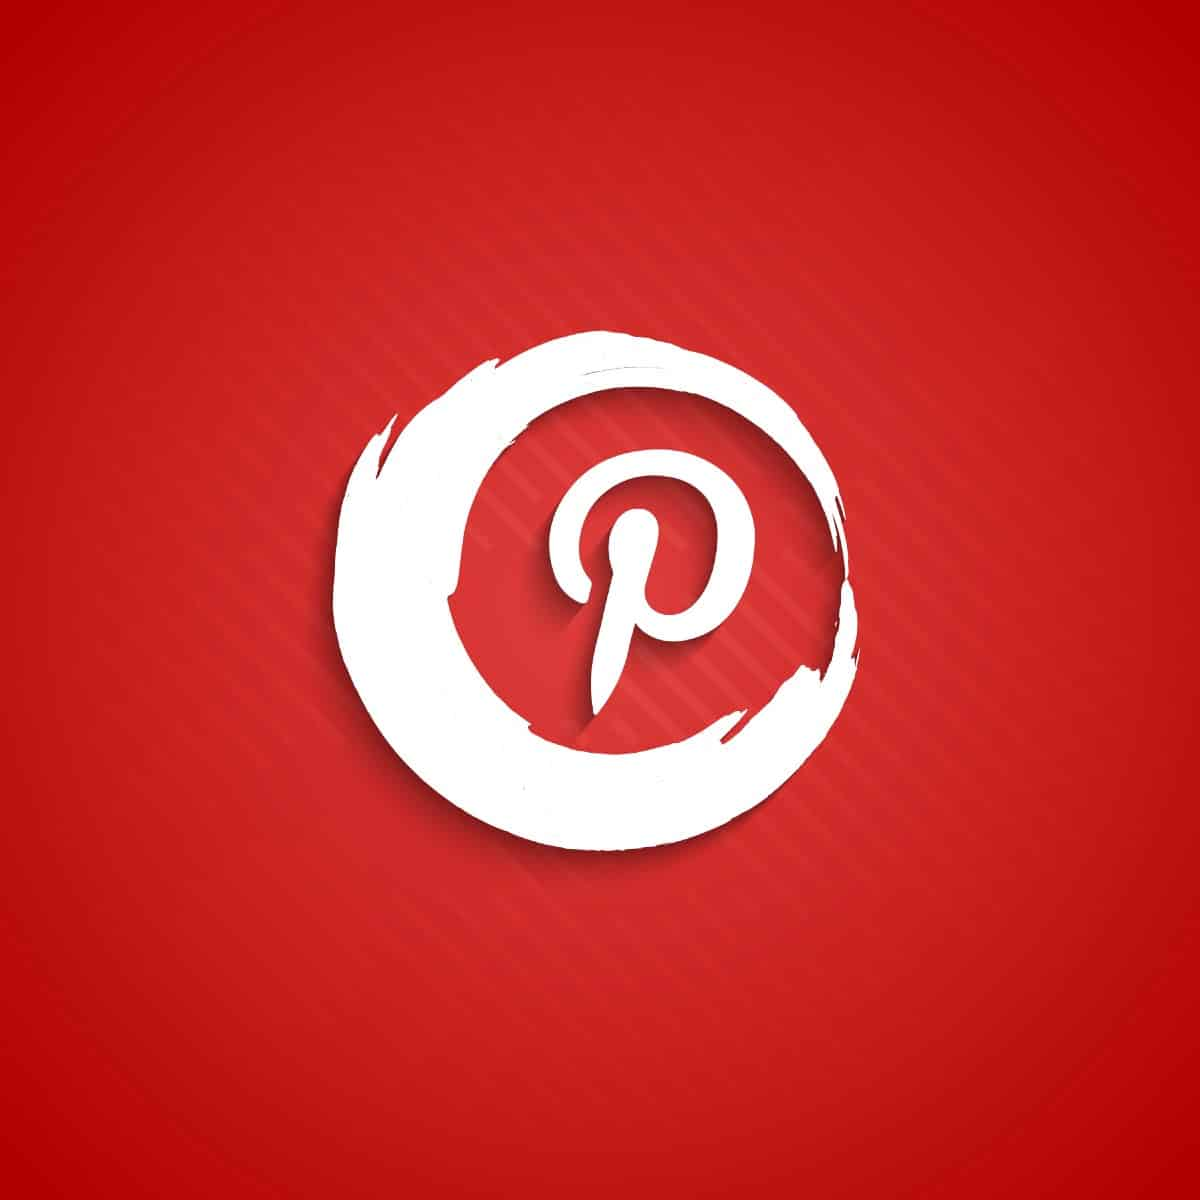 How To Unhide Hidden Pin On Pinterest